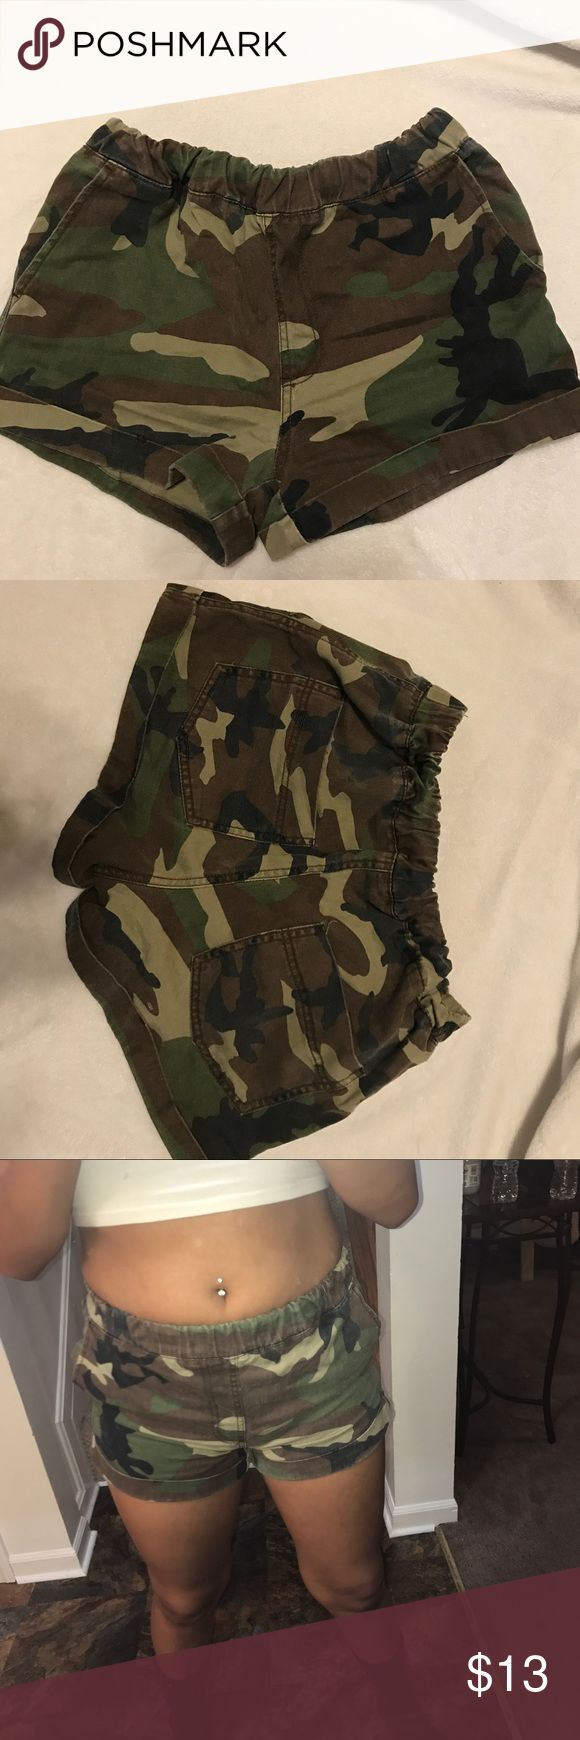 Forever 21 army shorts Elastic waistband/ pockets/ folded bottoms /never worn Forever 21 Shorts